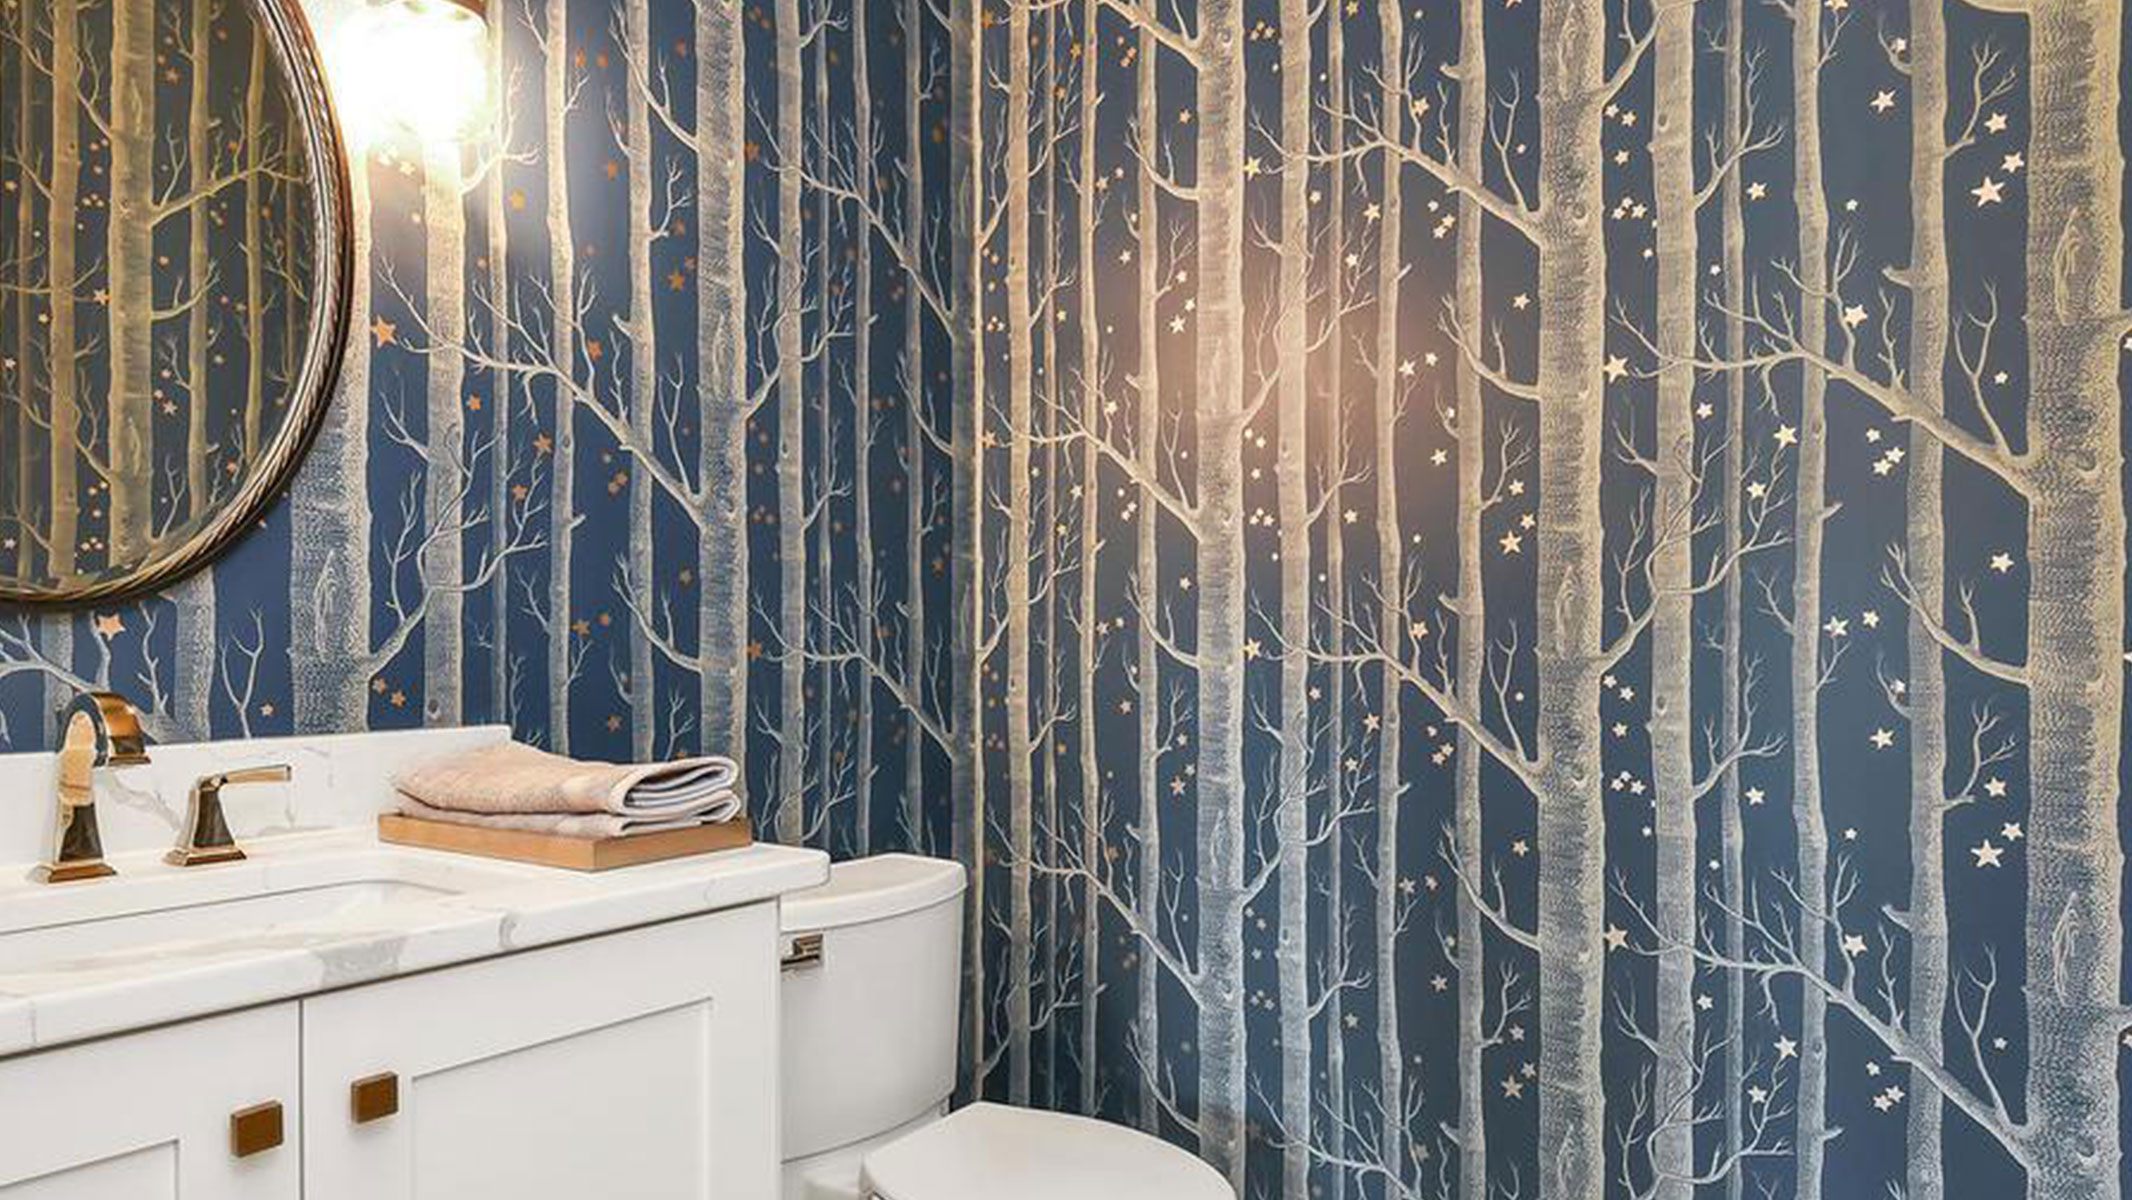 Wallpaper in a bath designed by At Home & Co.